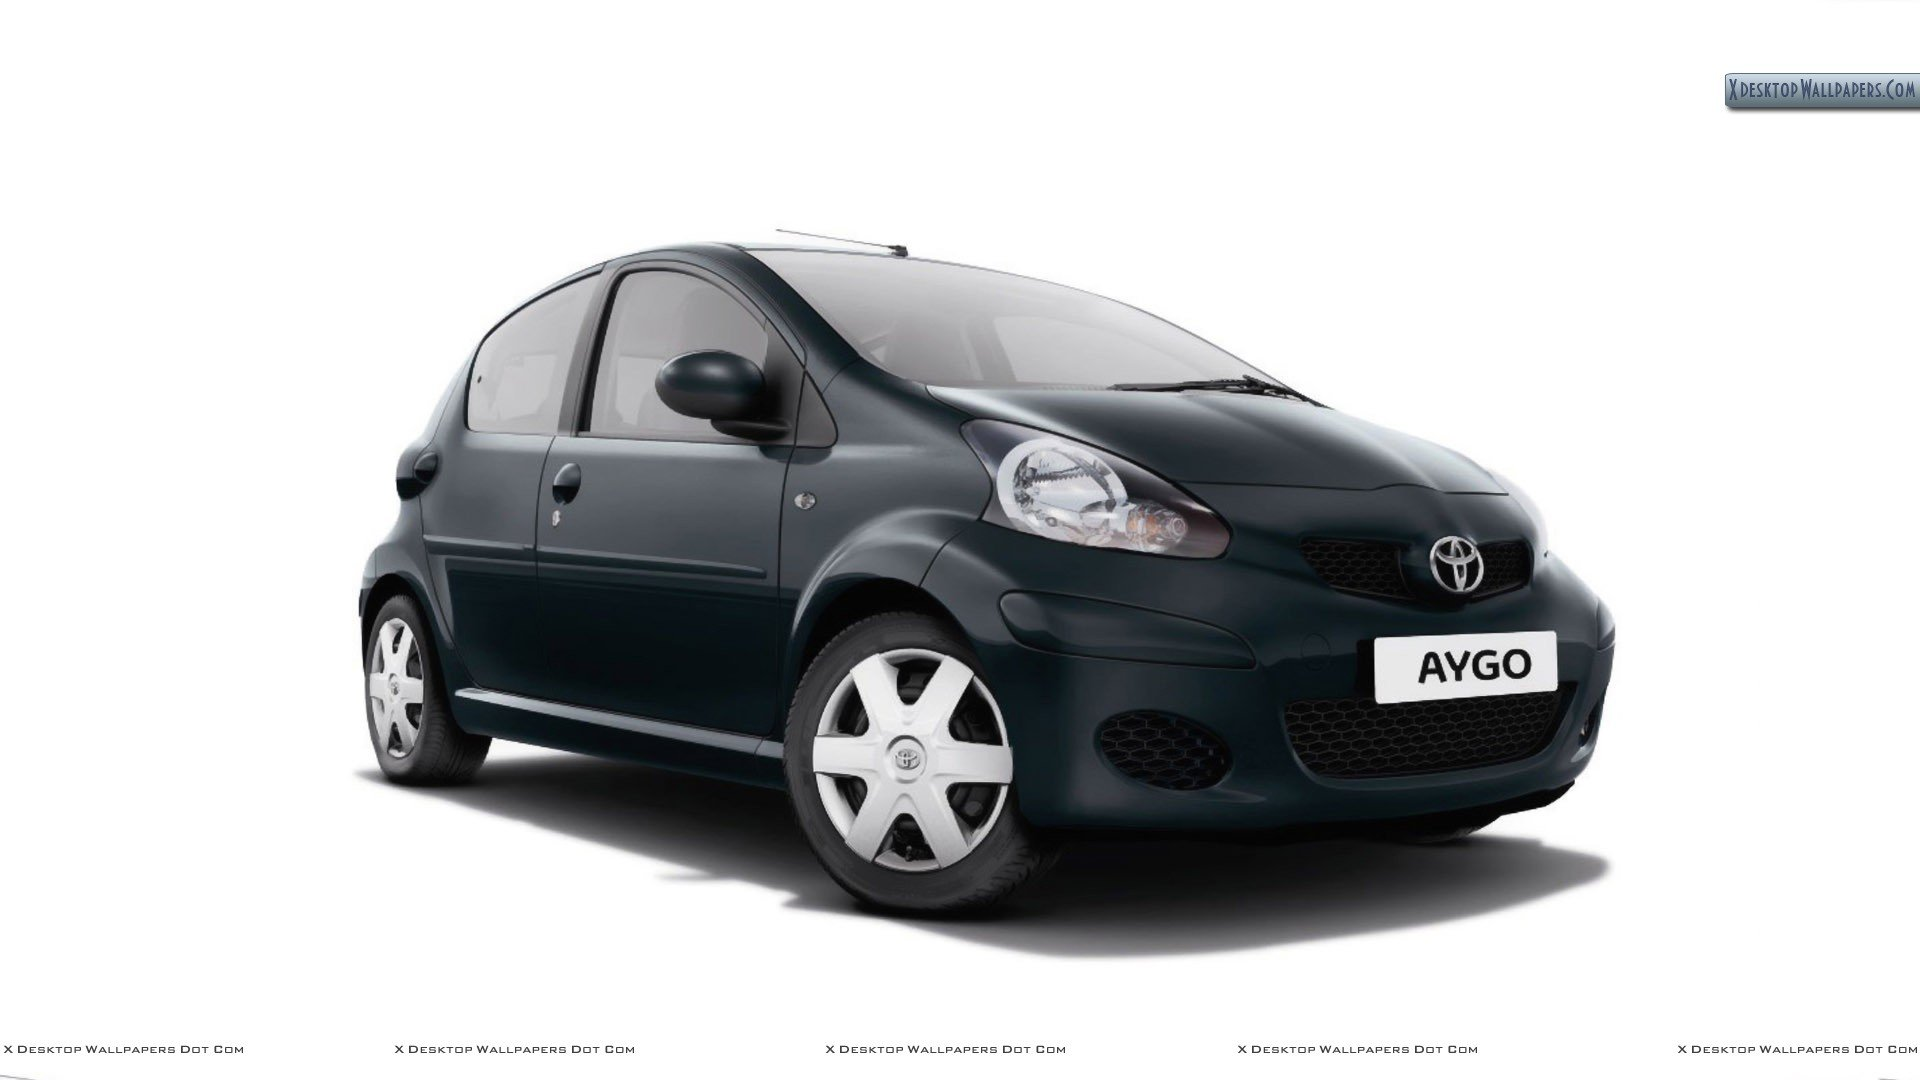 Toyota Aygo Ice Wallpapers Photos Images in HD 1920x1080